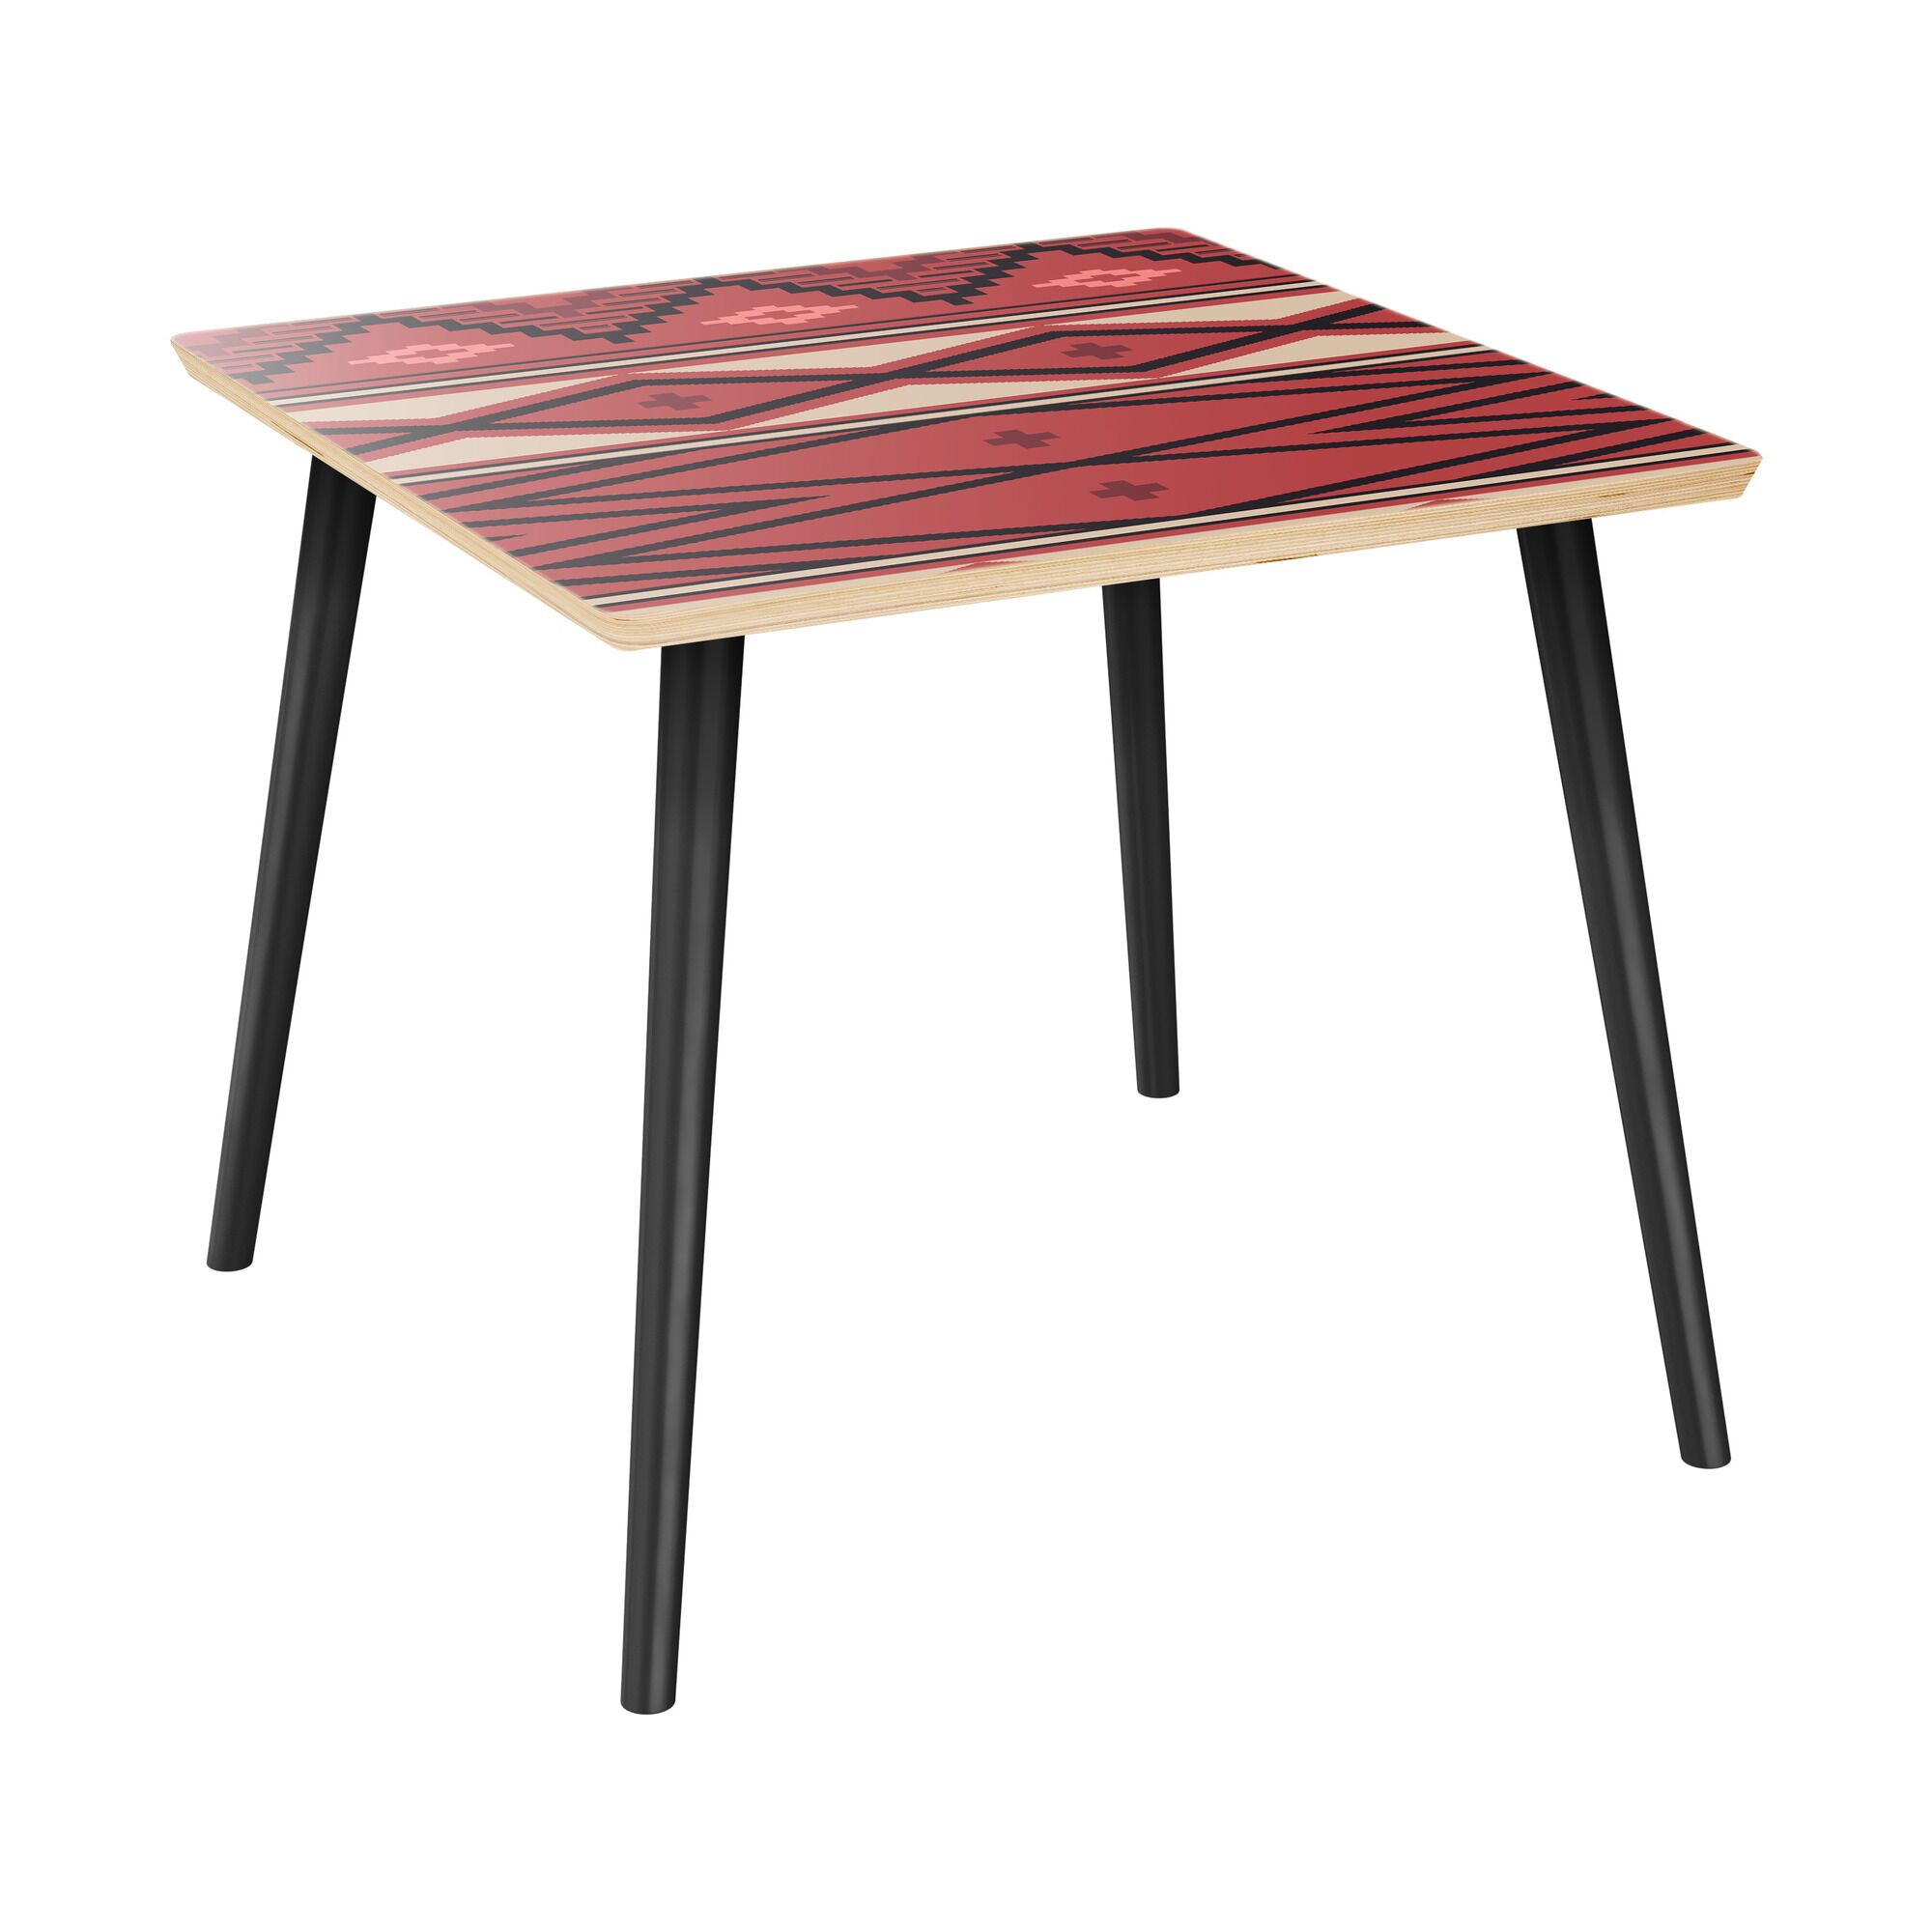 Houtz End Table Table Top Boarder Color: Natural, Table Base Color: Black, Table Top Color: Red